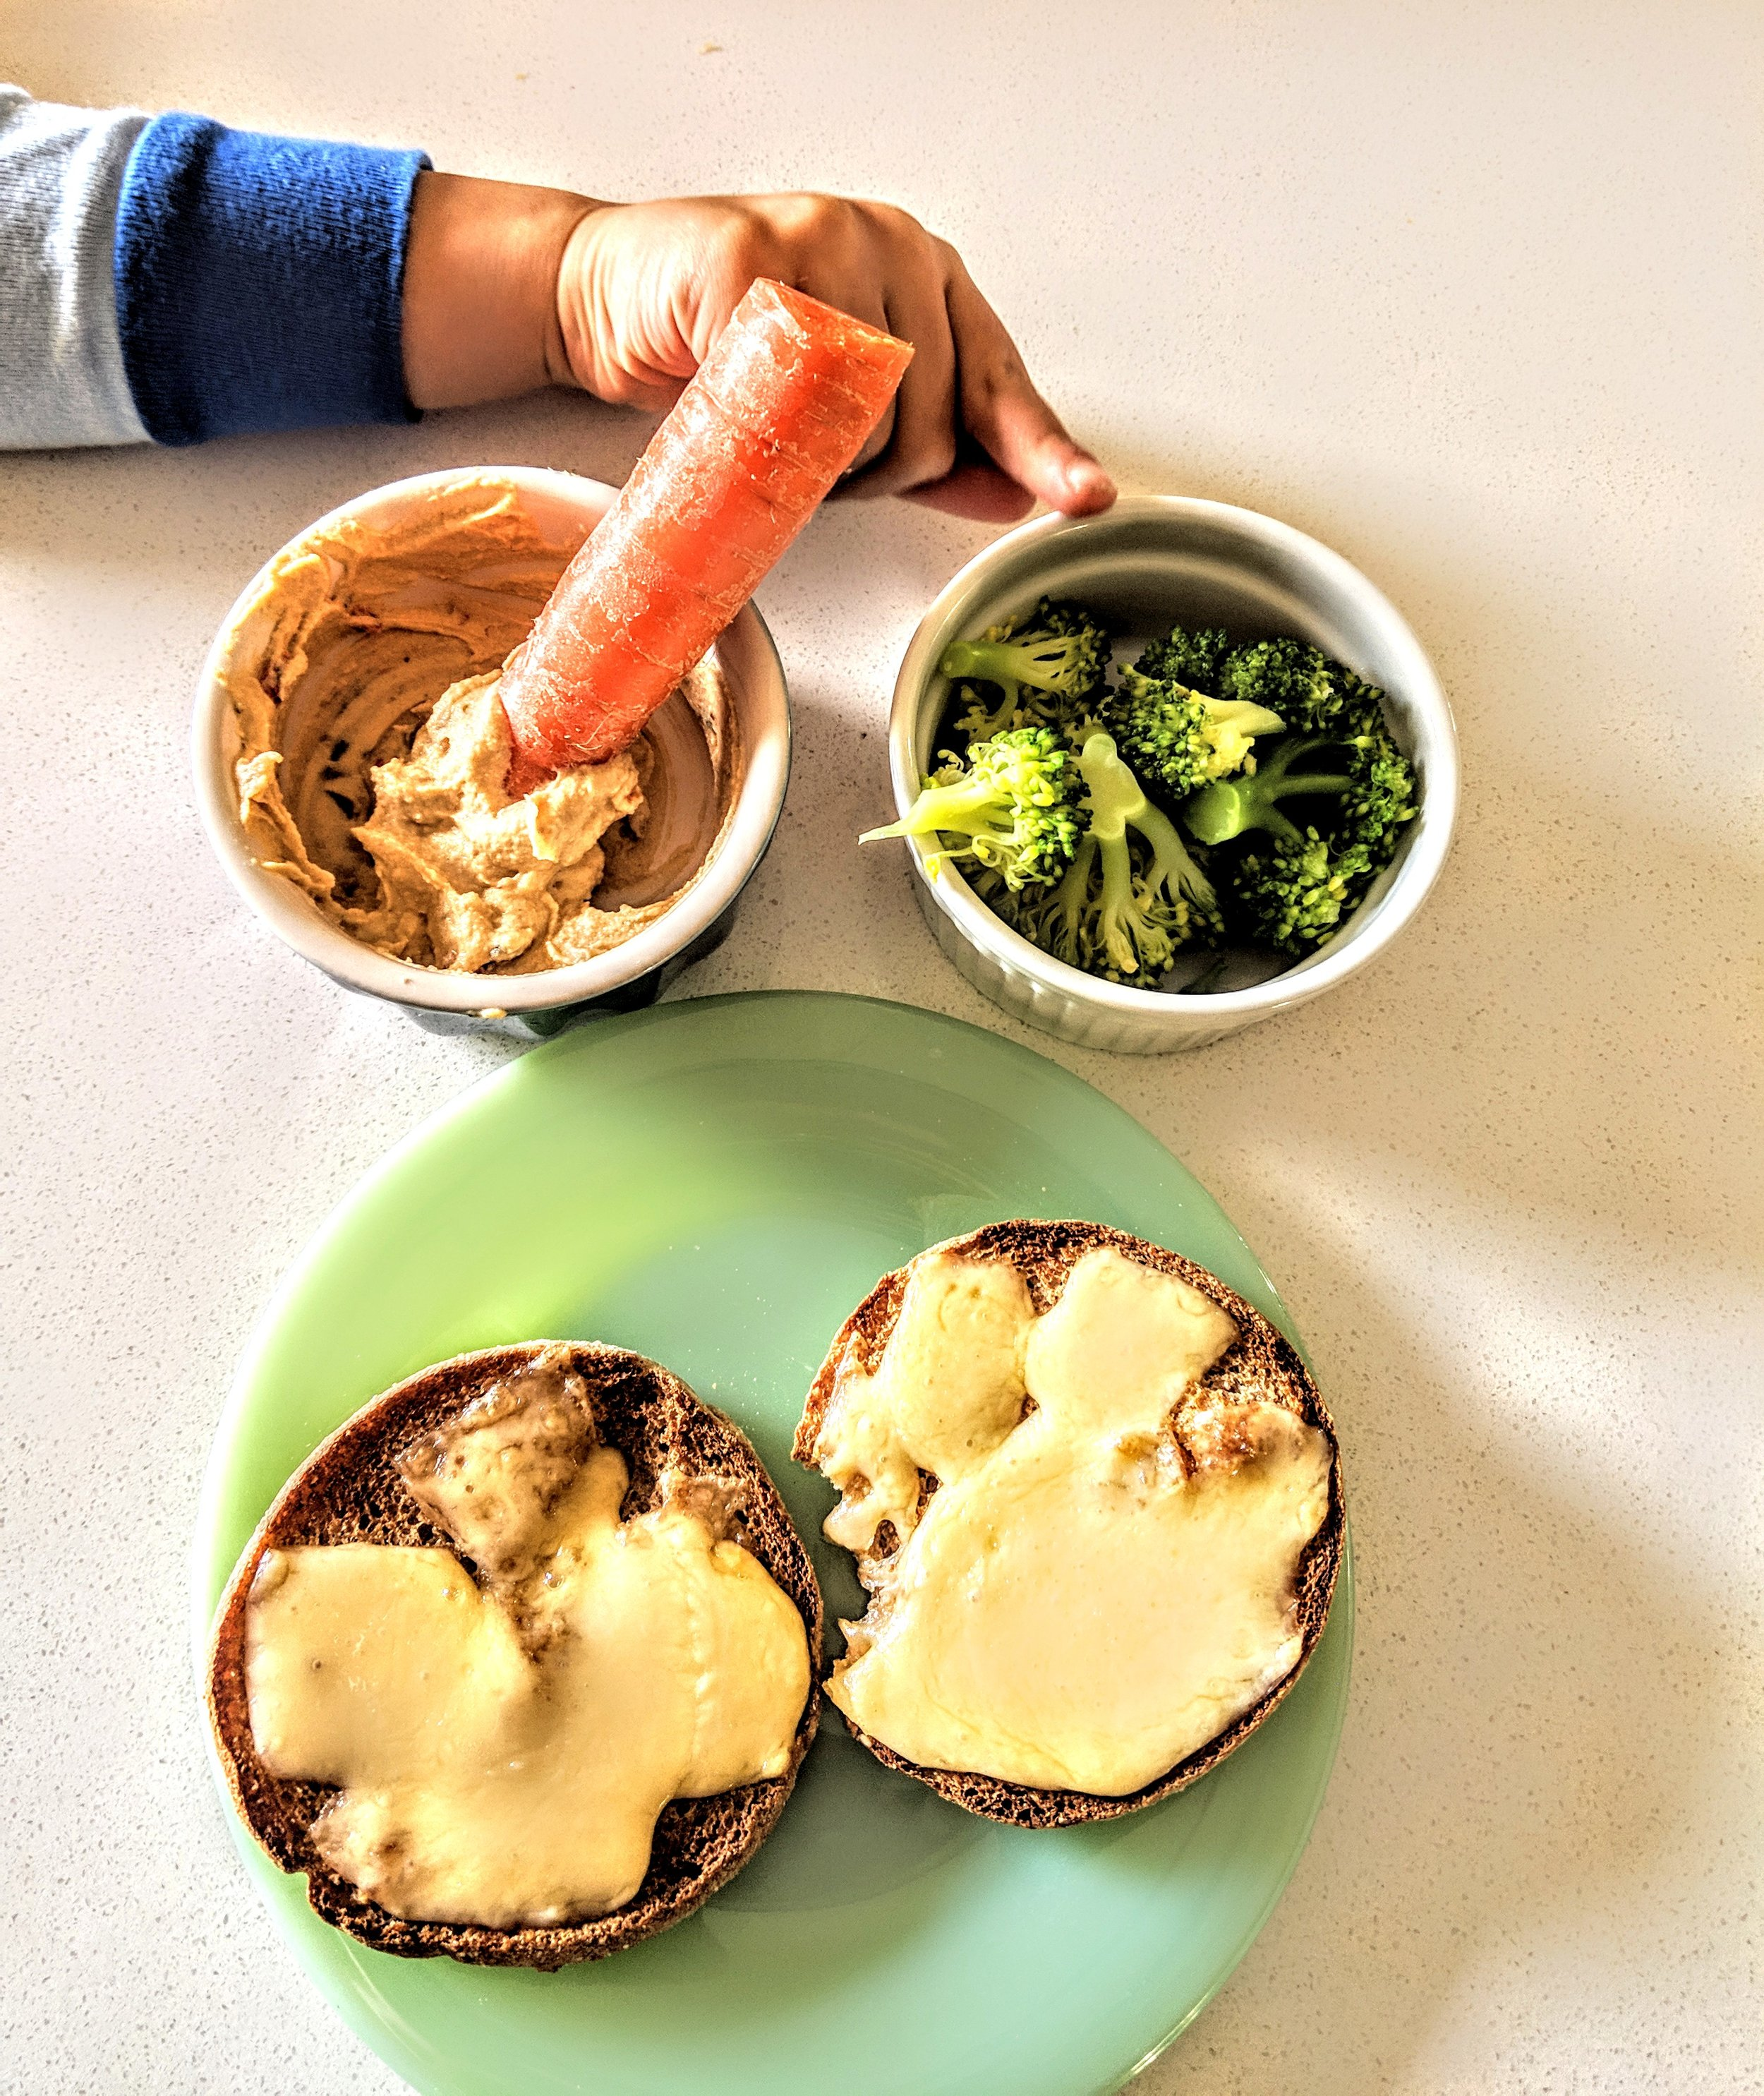 Hummus, carrot, broccoli, english muffin with cheese.